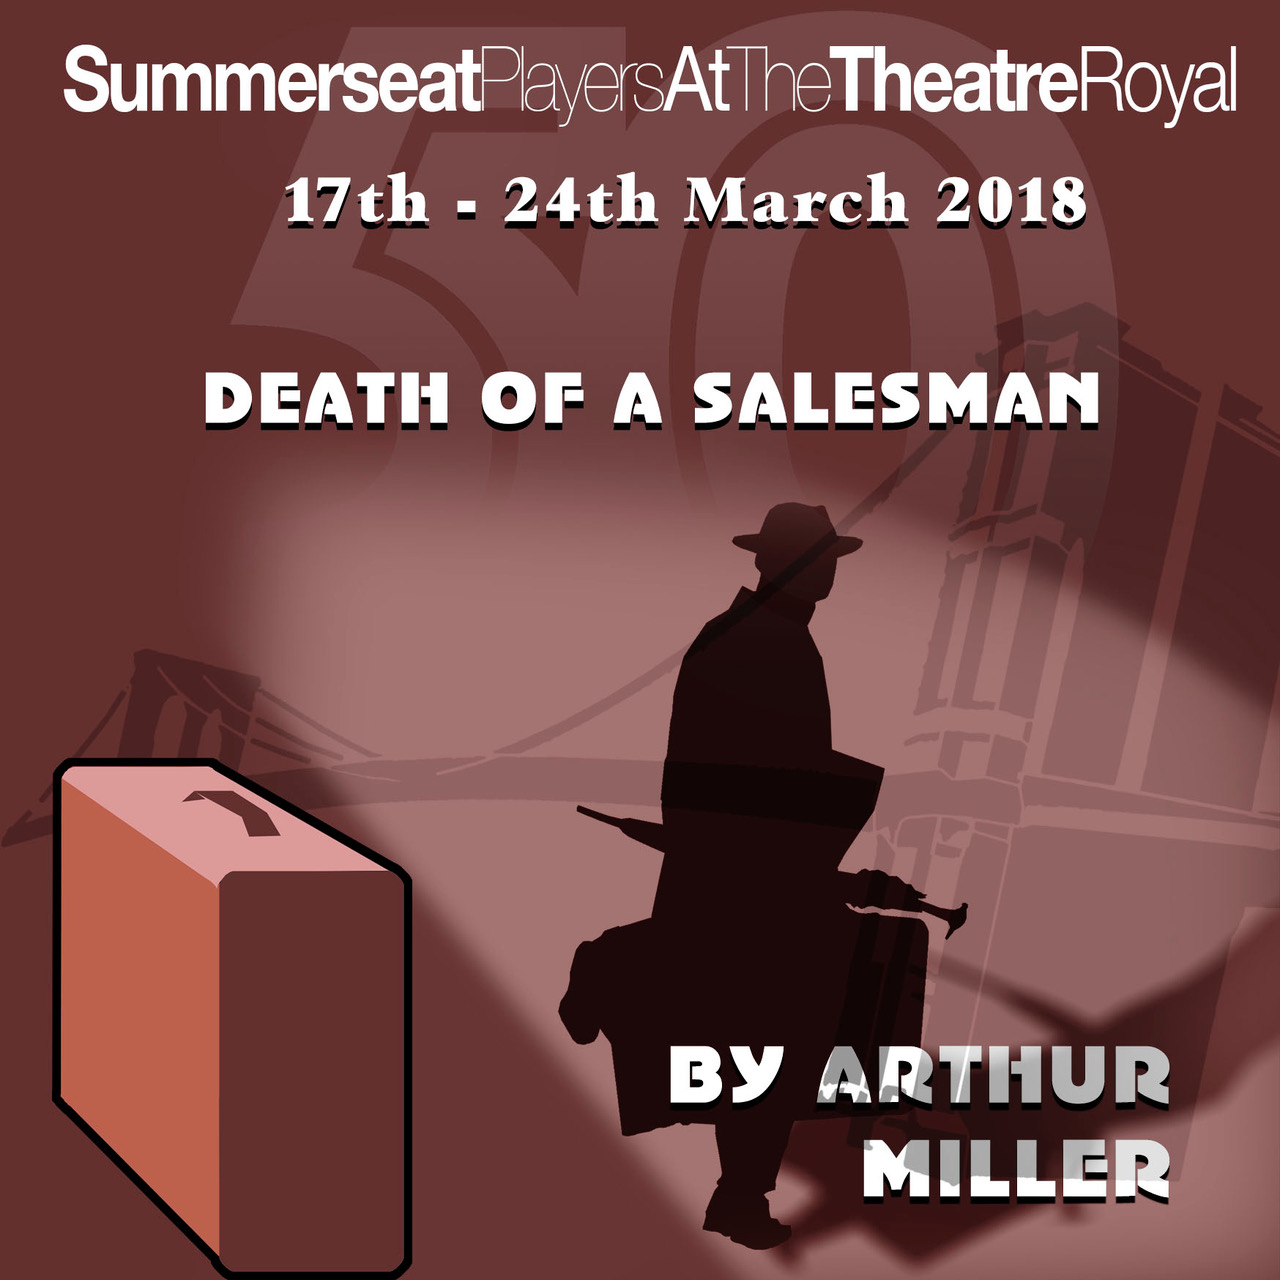 describing happy loman in arthur millers play death of a salesman In the arthur miller's play death of a salesman, the interaction between willy loman and his sons, happy and biff, allows miller to comment on father-son relationships and the conflicts that arise from them.